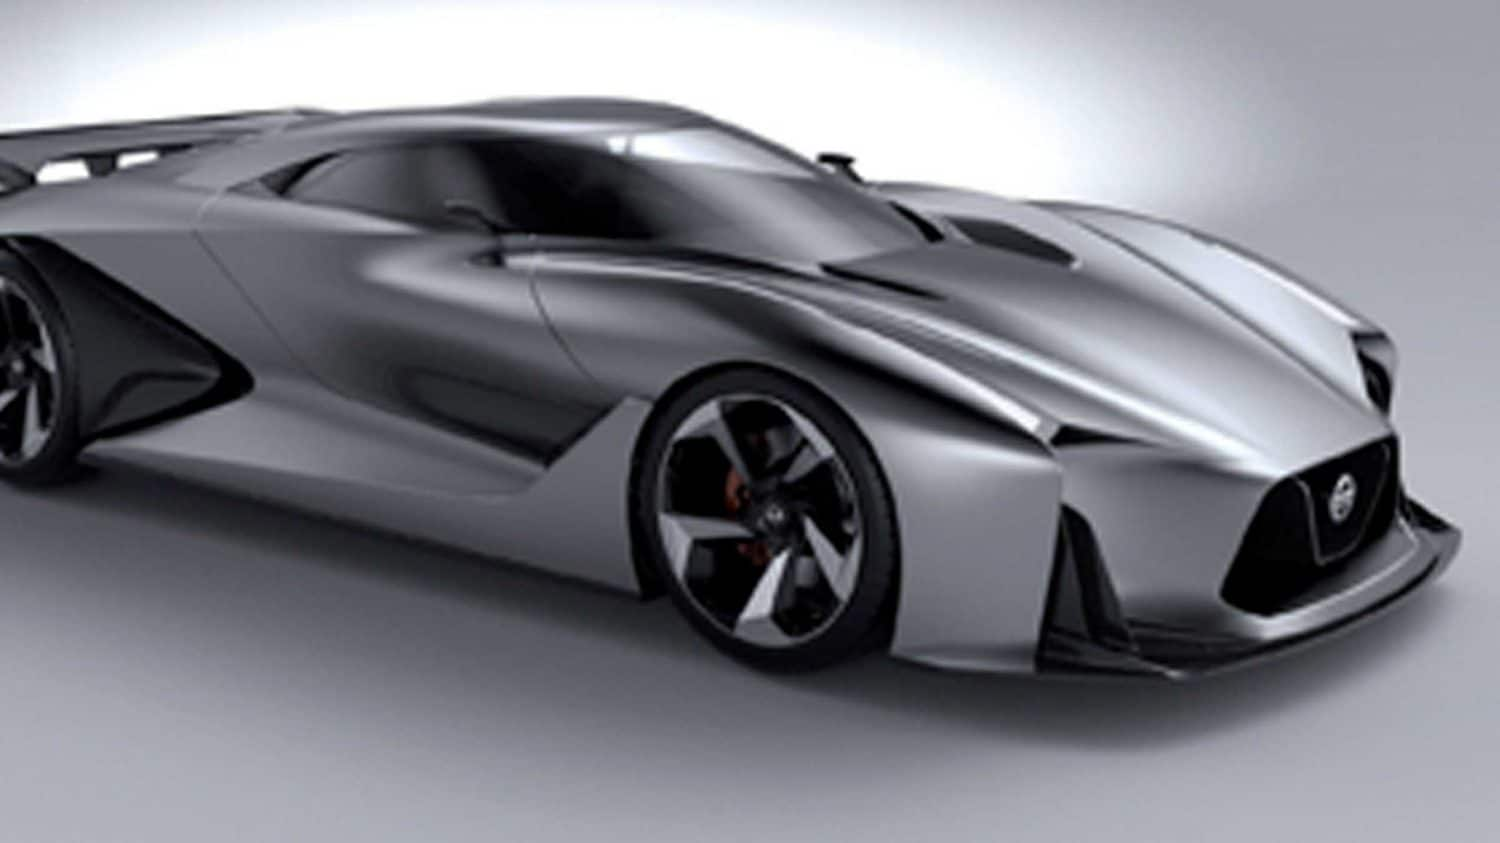 90 Best Review 2020 Nissan Gran Turismo Wallpaper with 2020 Nissan Gran Turismo